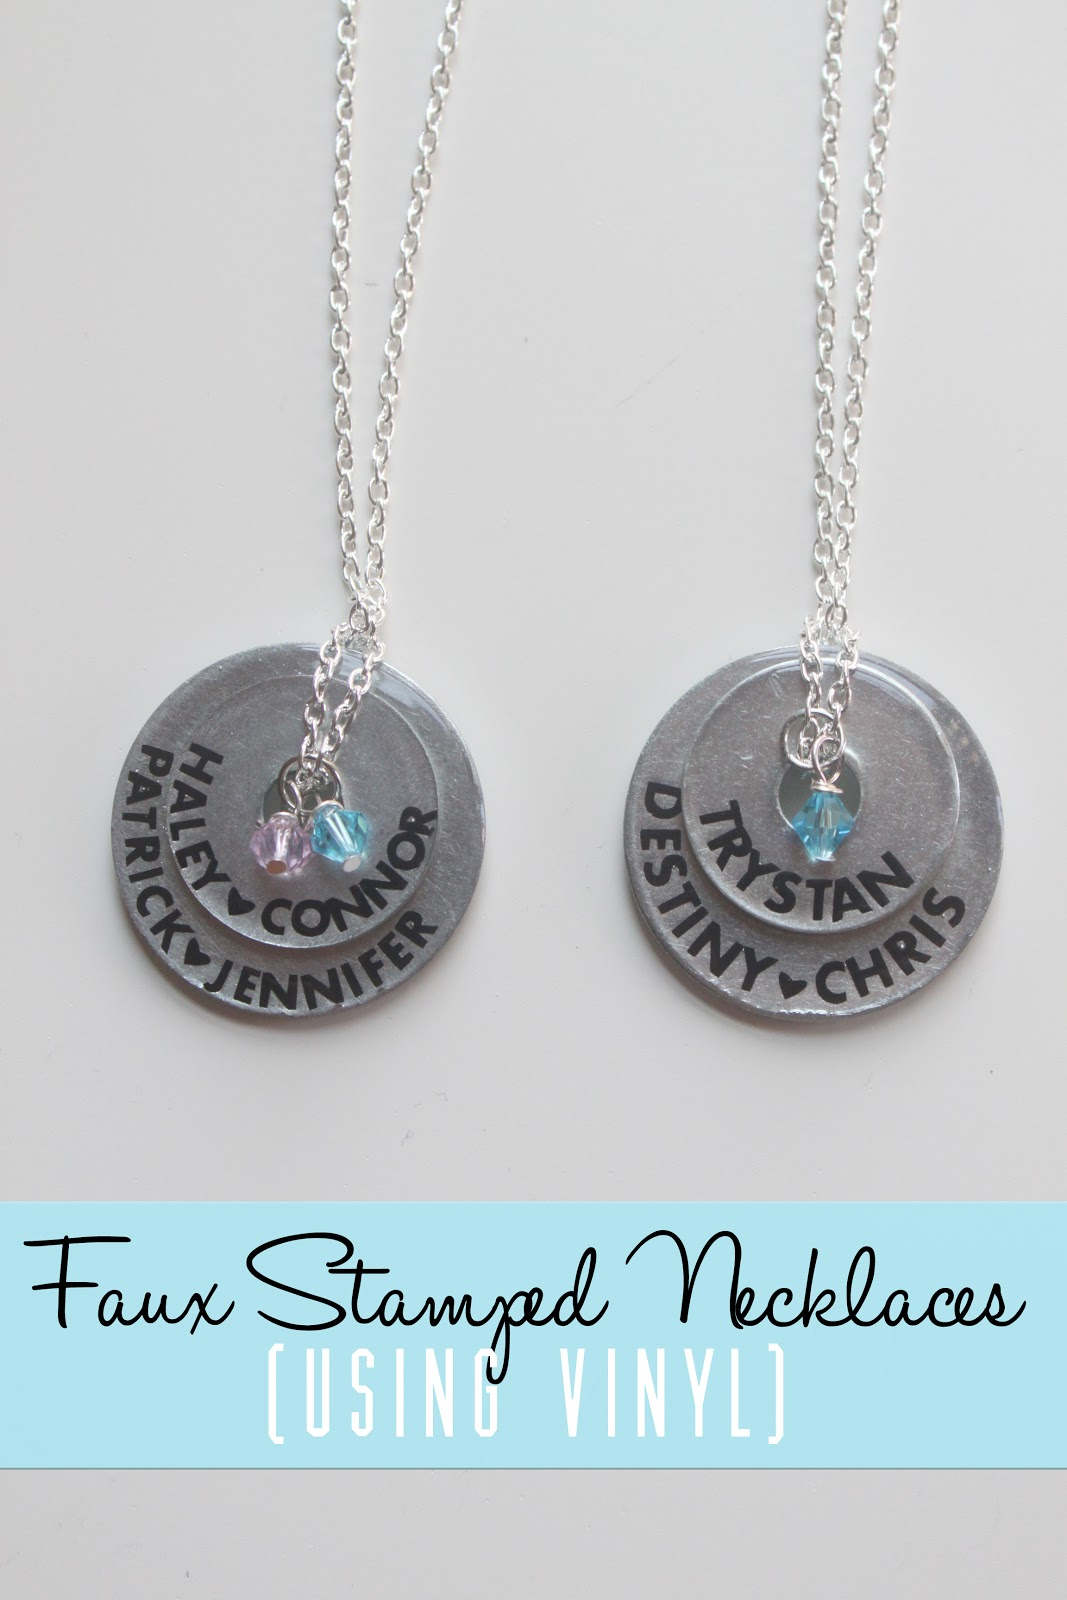 Faux Stamped Necklaces